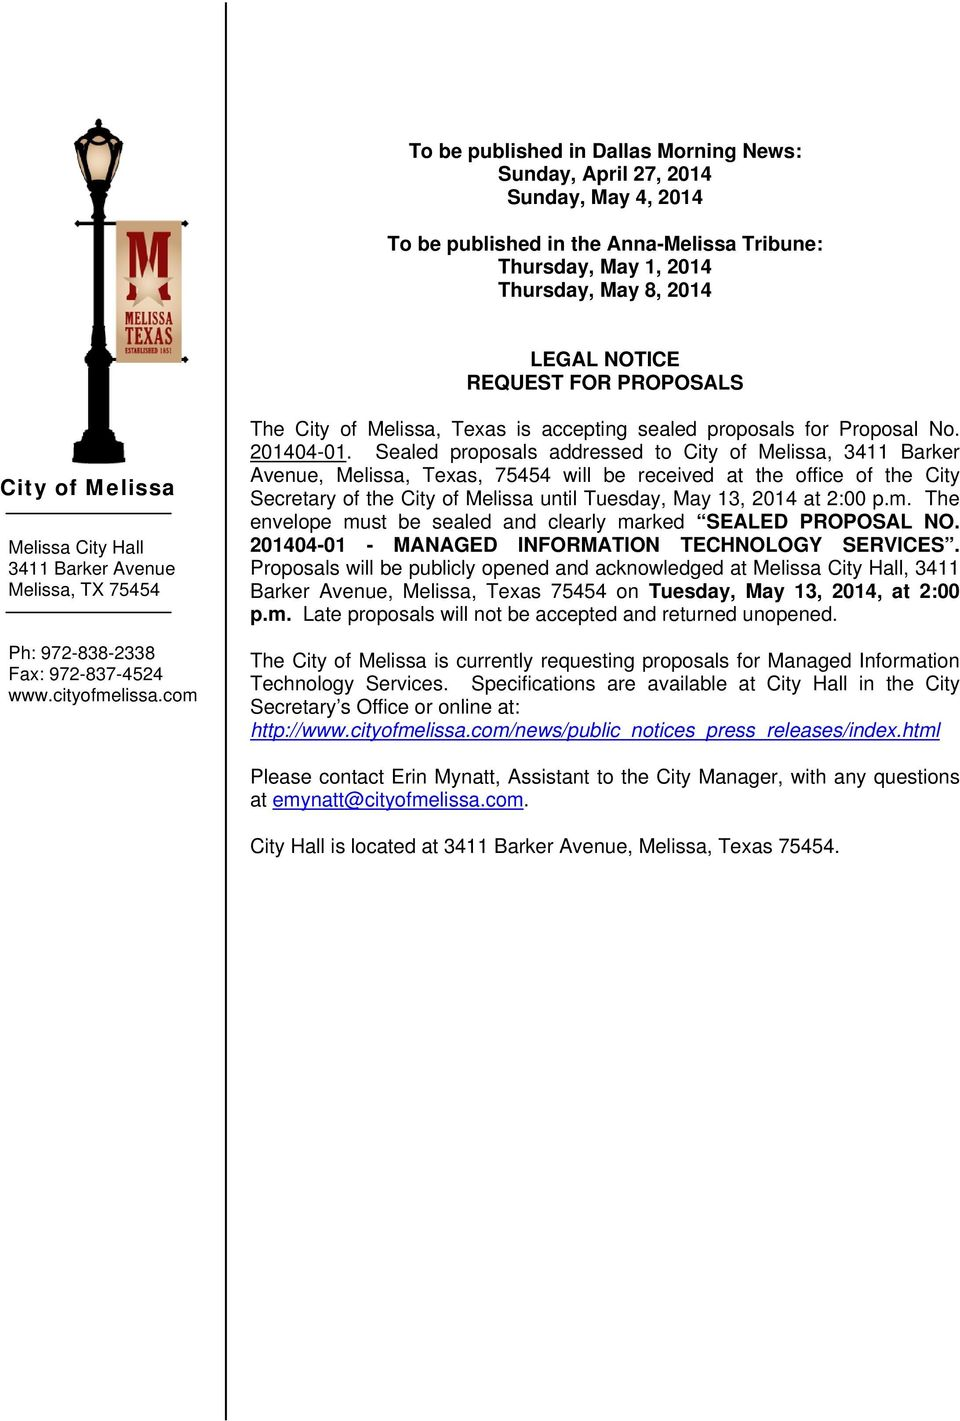 com The City of Melissa, Texas is accepting sealed proposals for Proposal No. 201404-01.